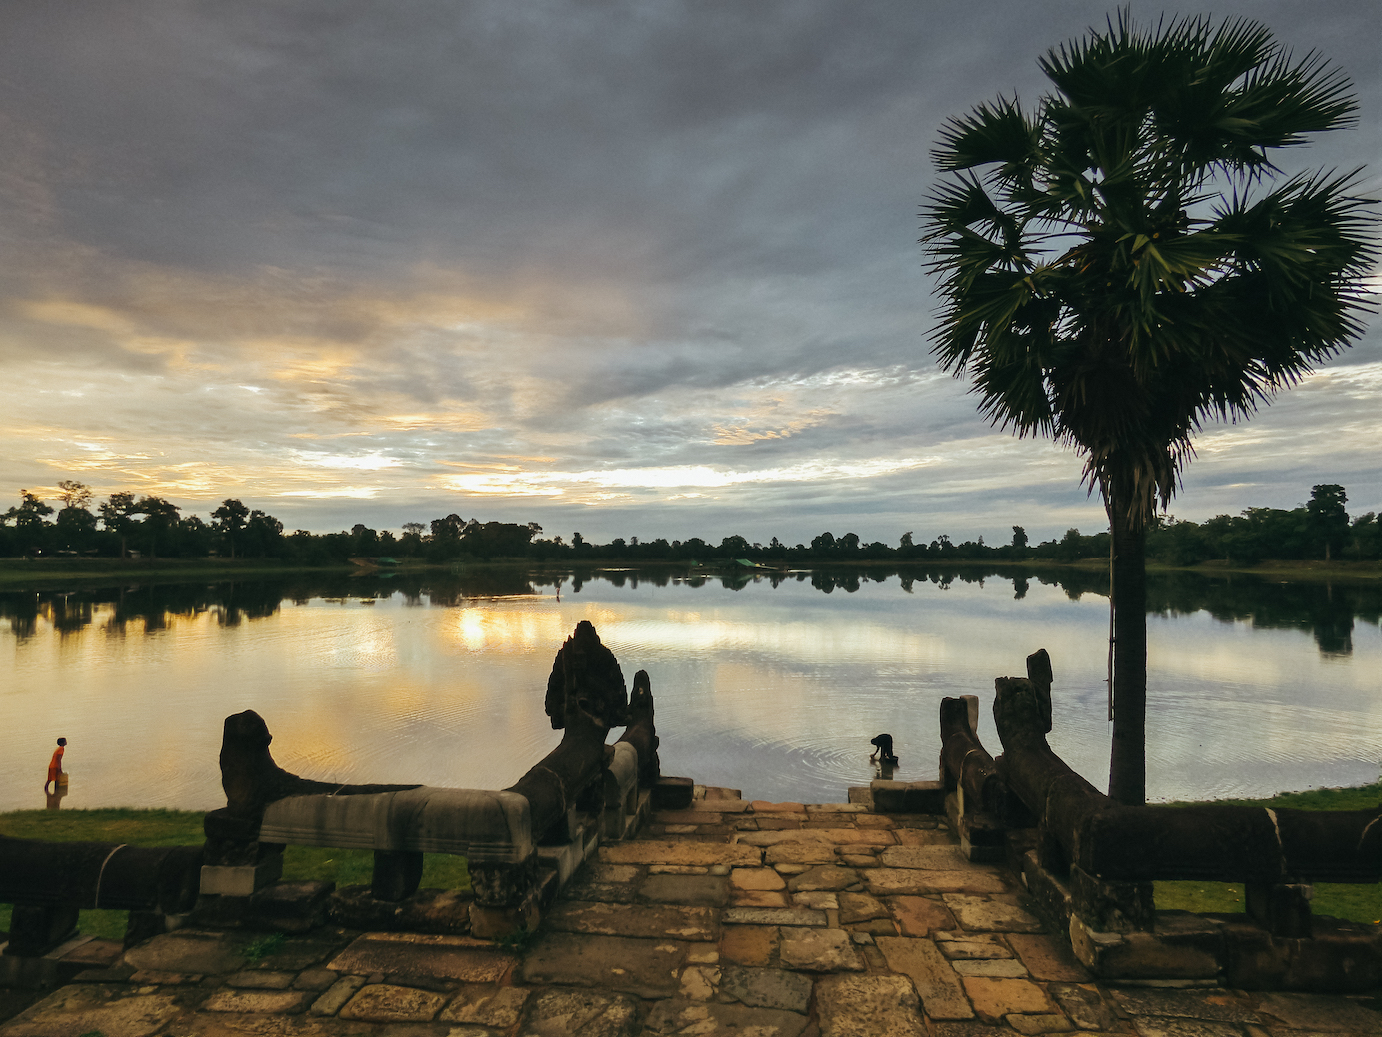 Sunrise at Angkor: a picturesque alternative